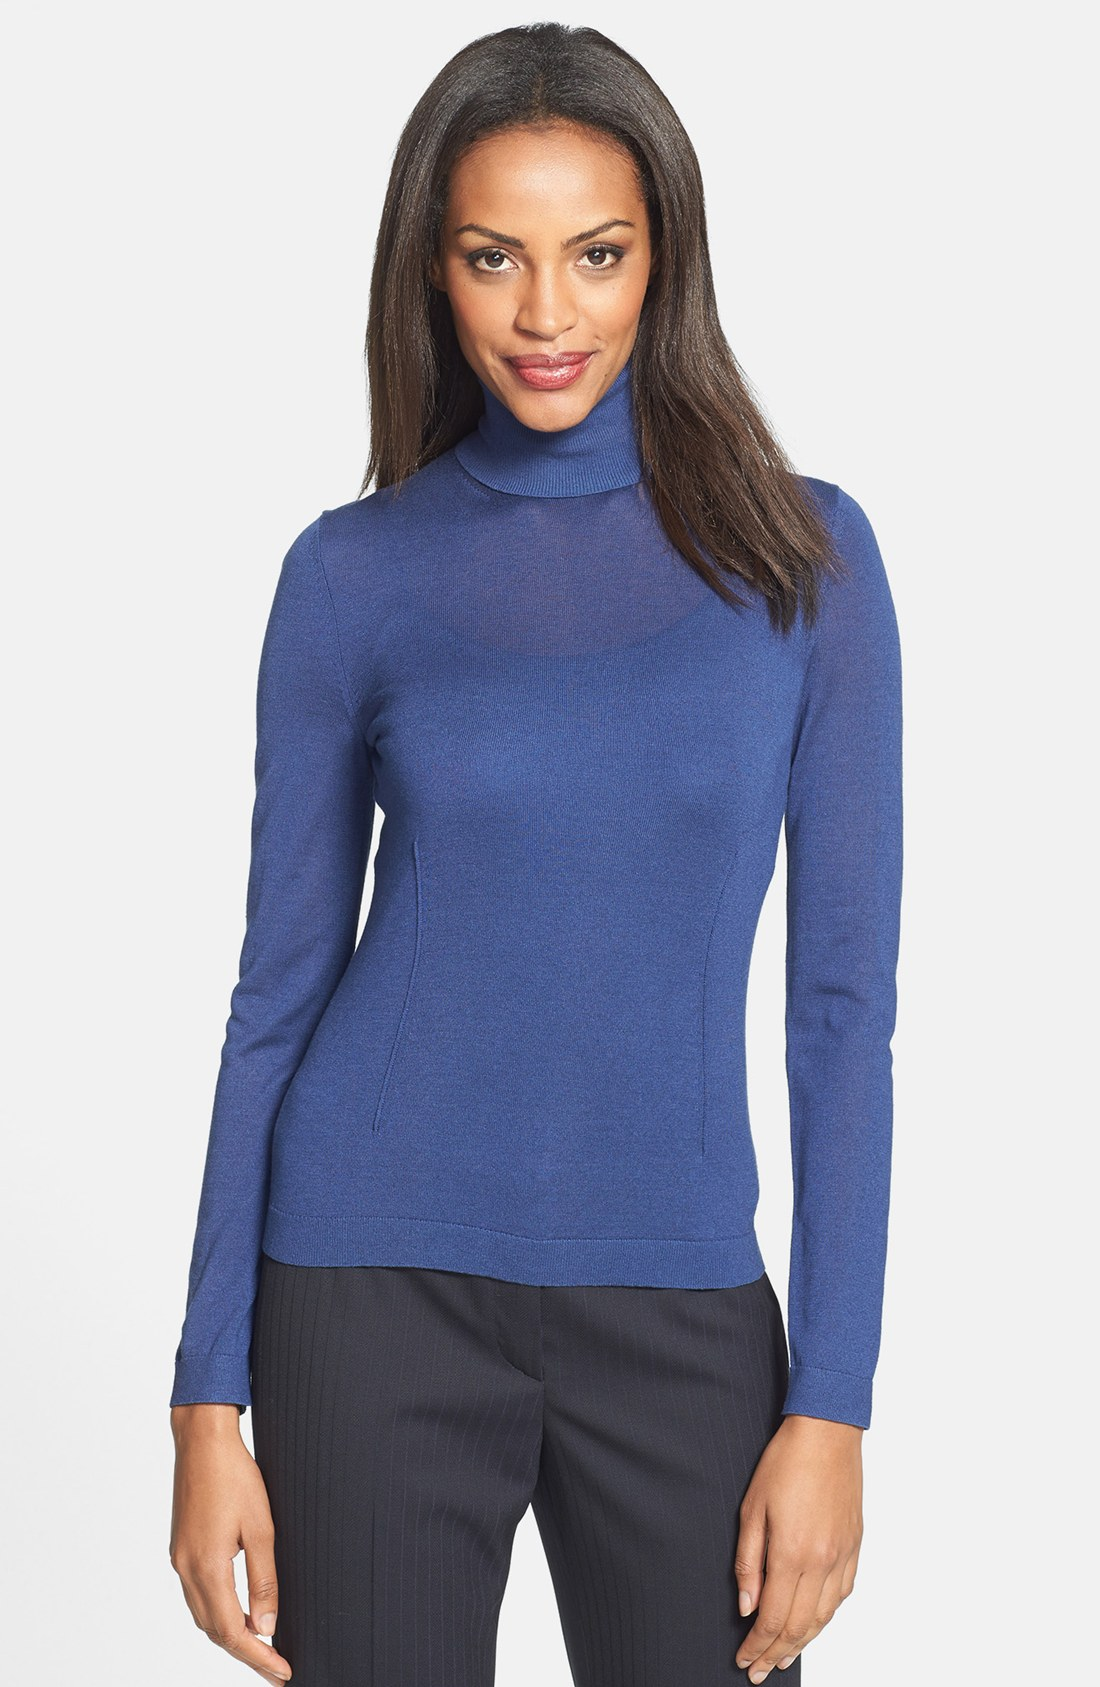 Nordstrom Cashmere Sweaters